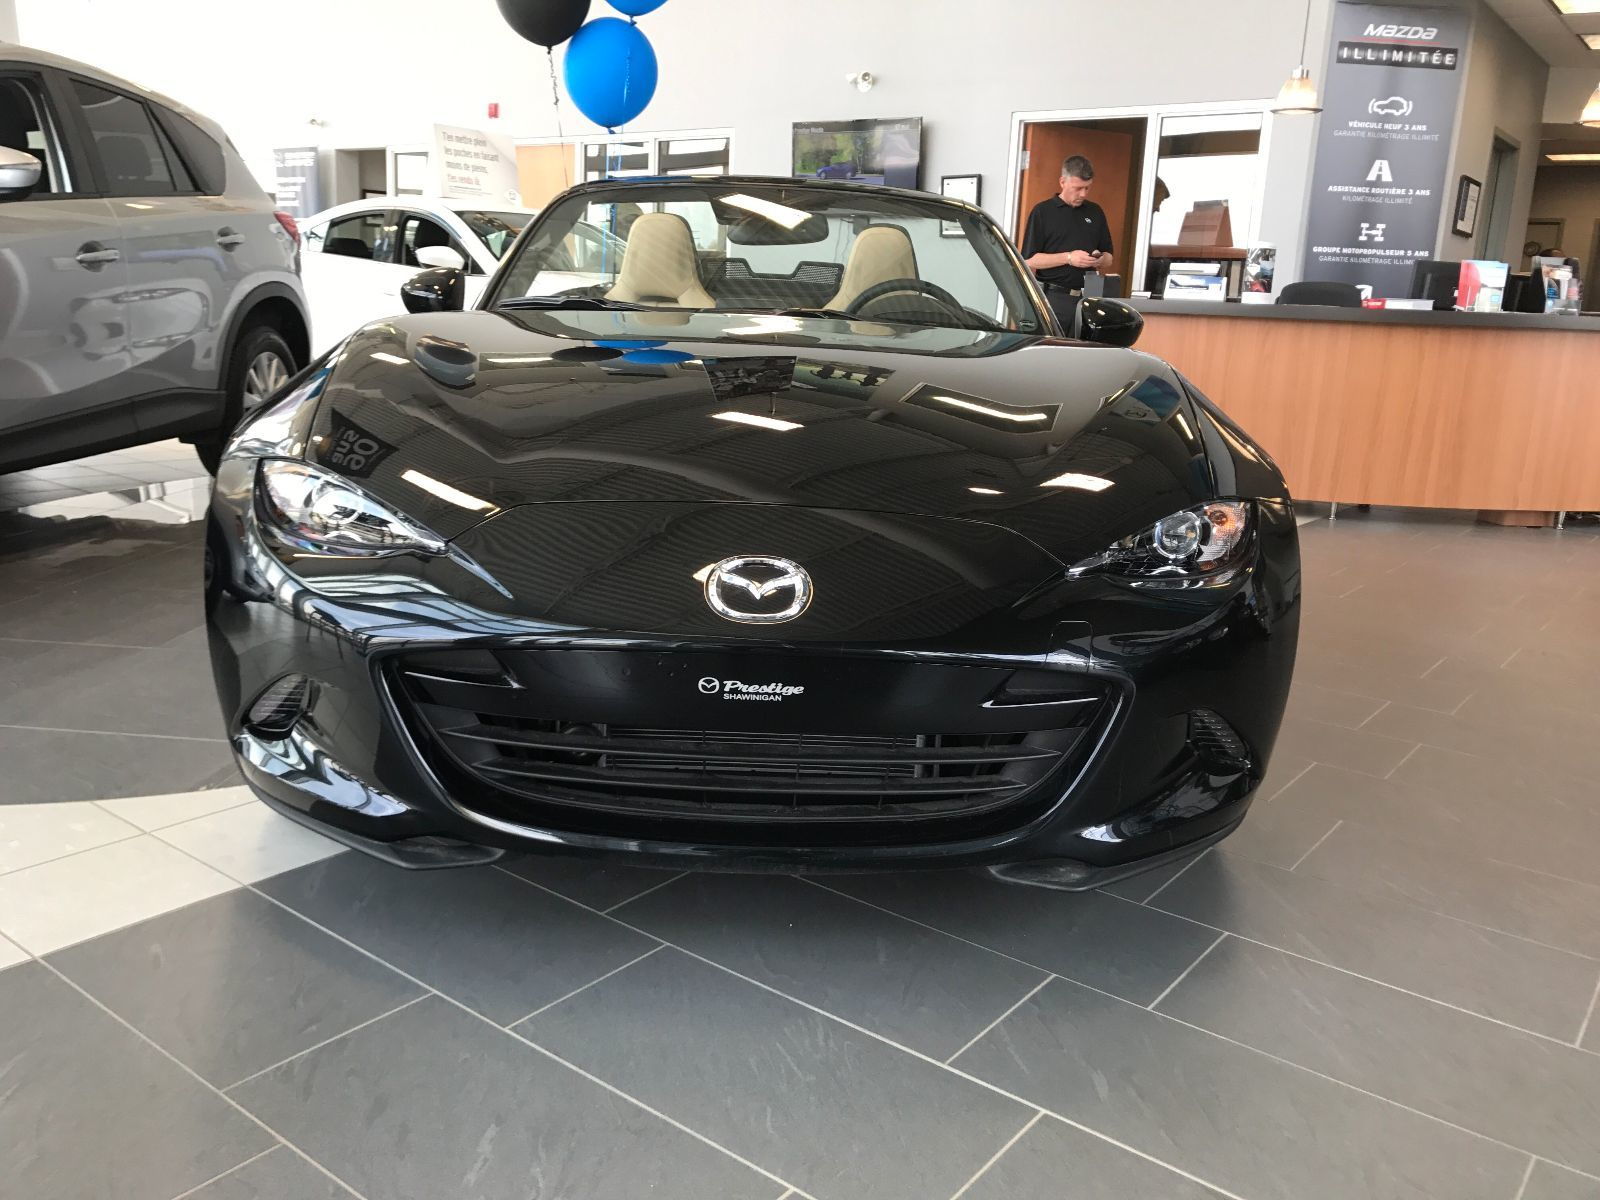 mazda mx 5 gt audio bose 2016 d 39 occasion shawinigan. Black Bedroom Furniture Sets. Home Design Ideas